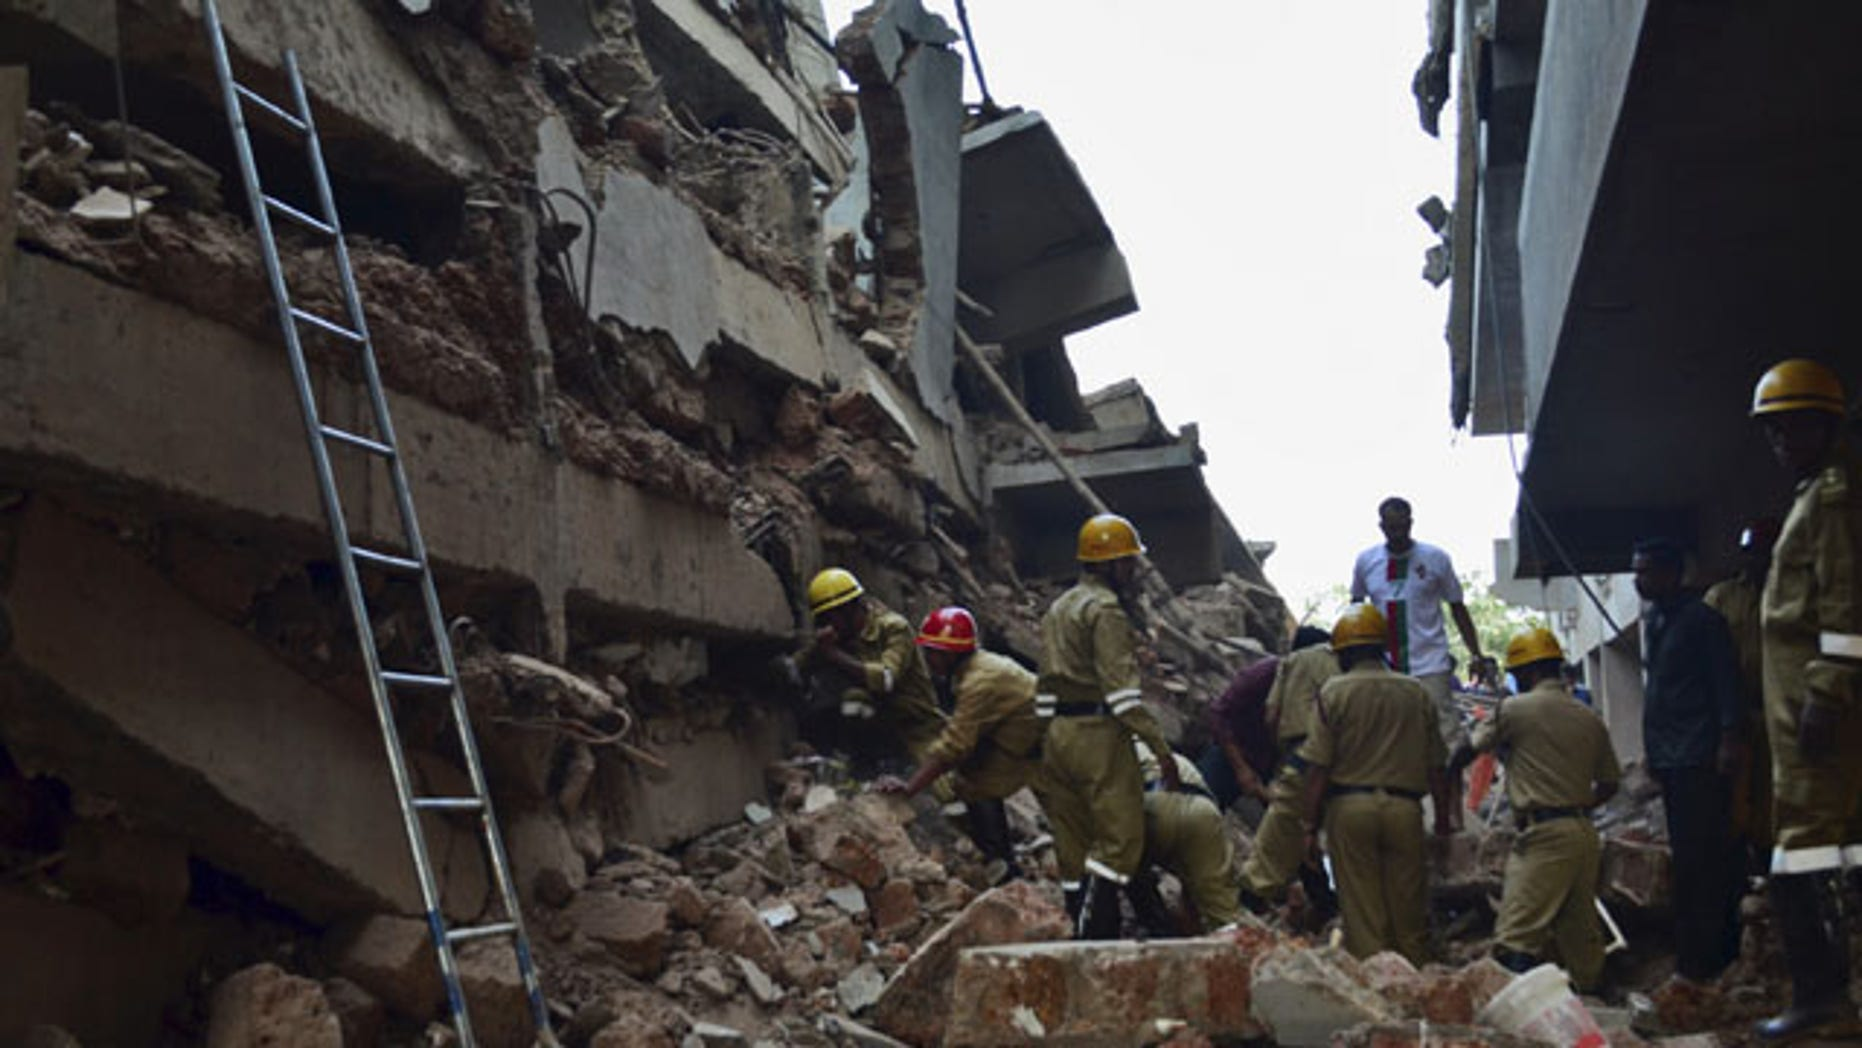 January 4, 2014: Rescue workers stand amid the debris of a building that collapsed in Canacona, a city about 44 miles from the state capital of Panaji, India. (AP Photo)